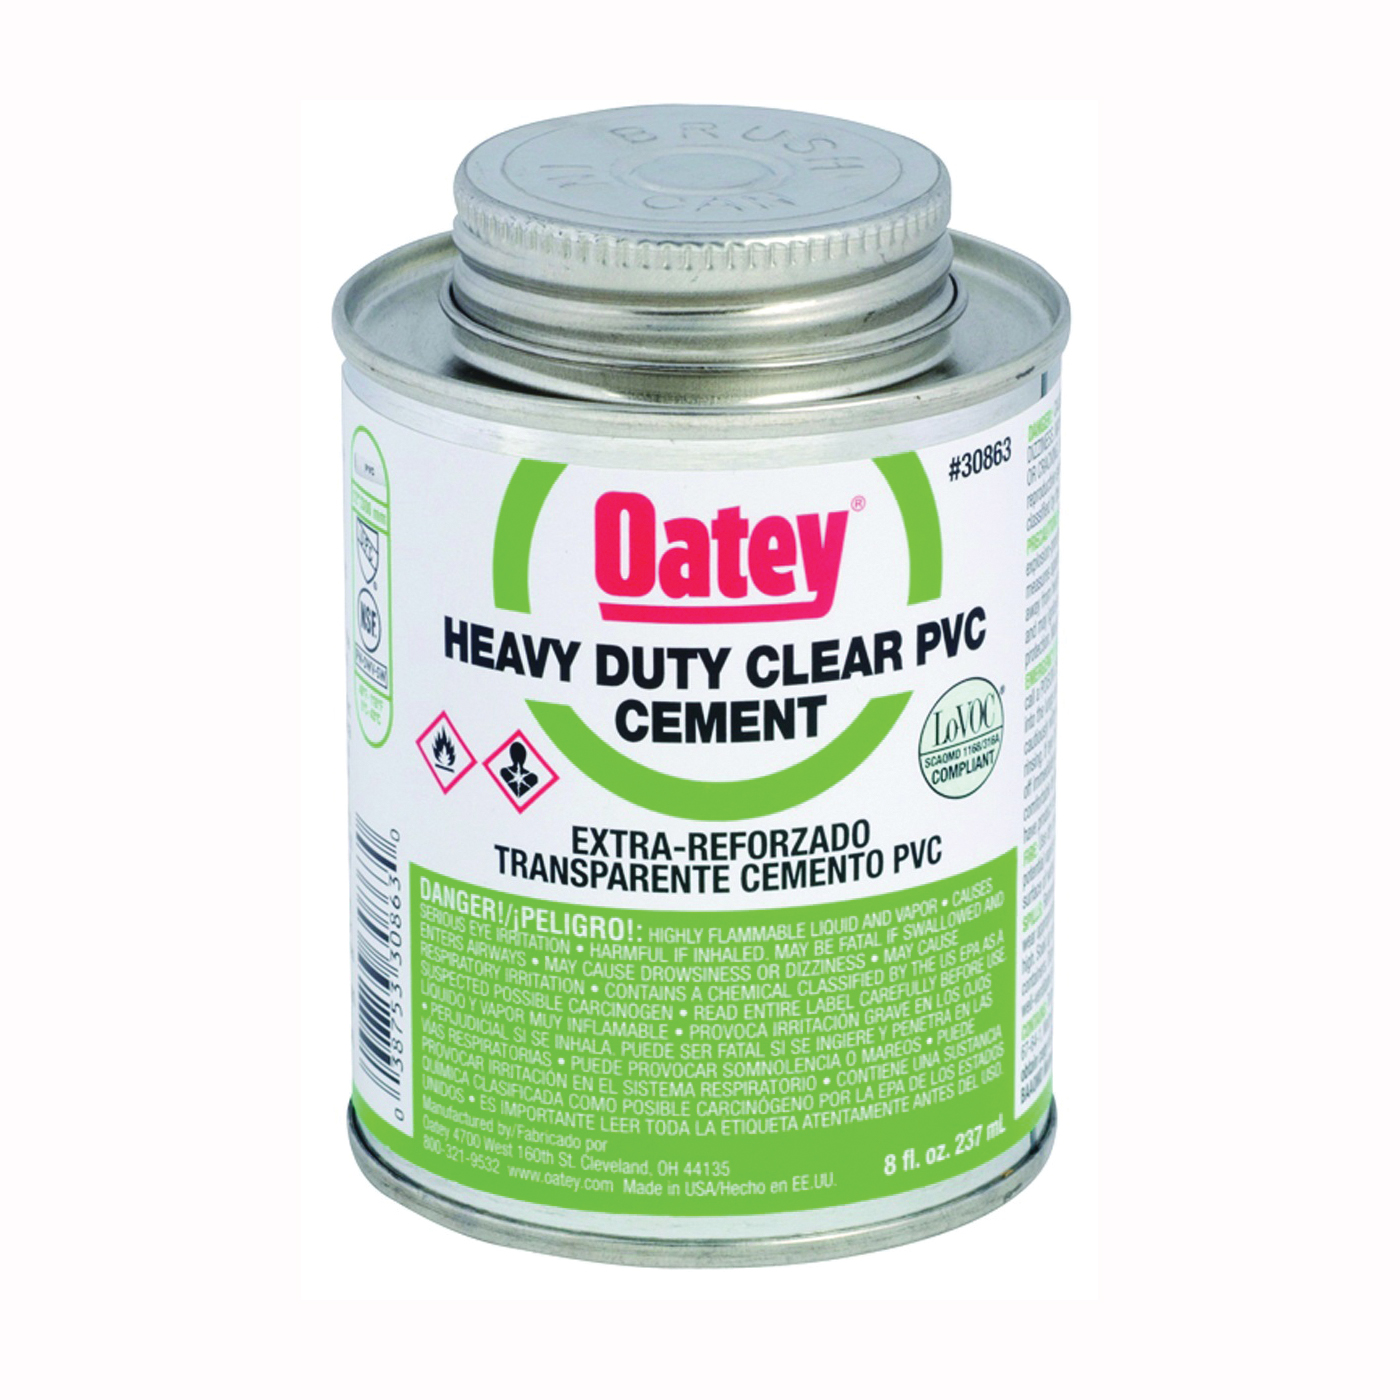 Picture of Oatey 30876 Solvent Cement, 16 oz, Can, Liquid, Clear